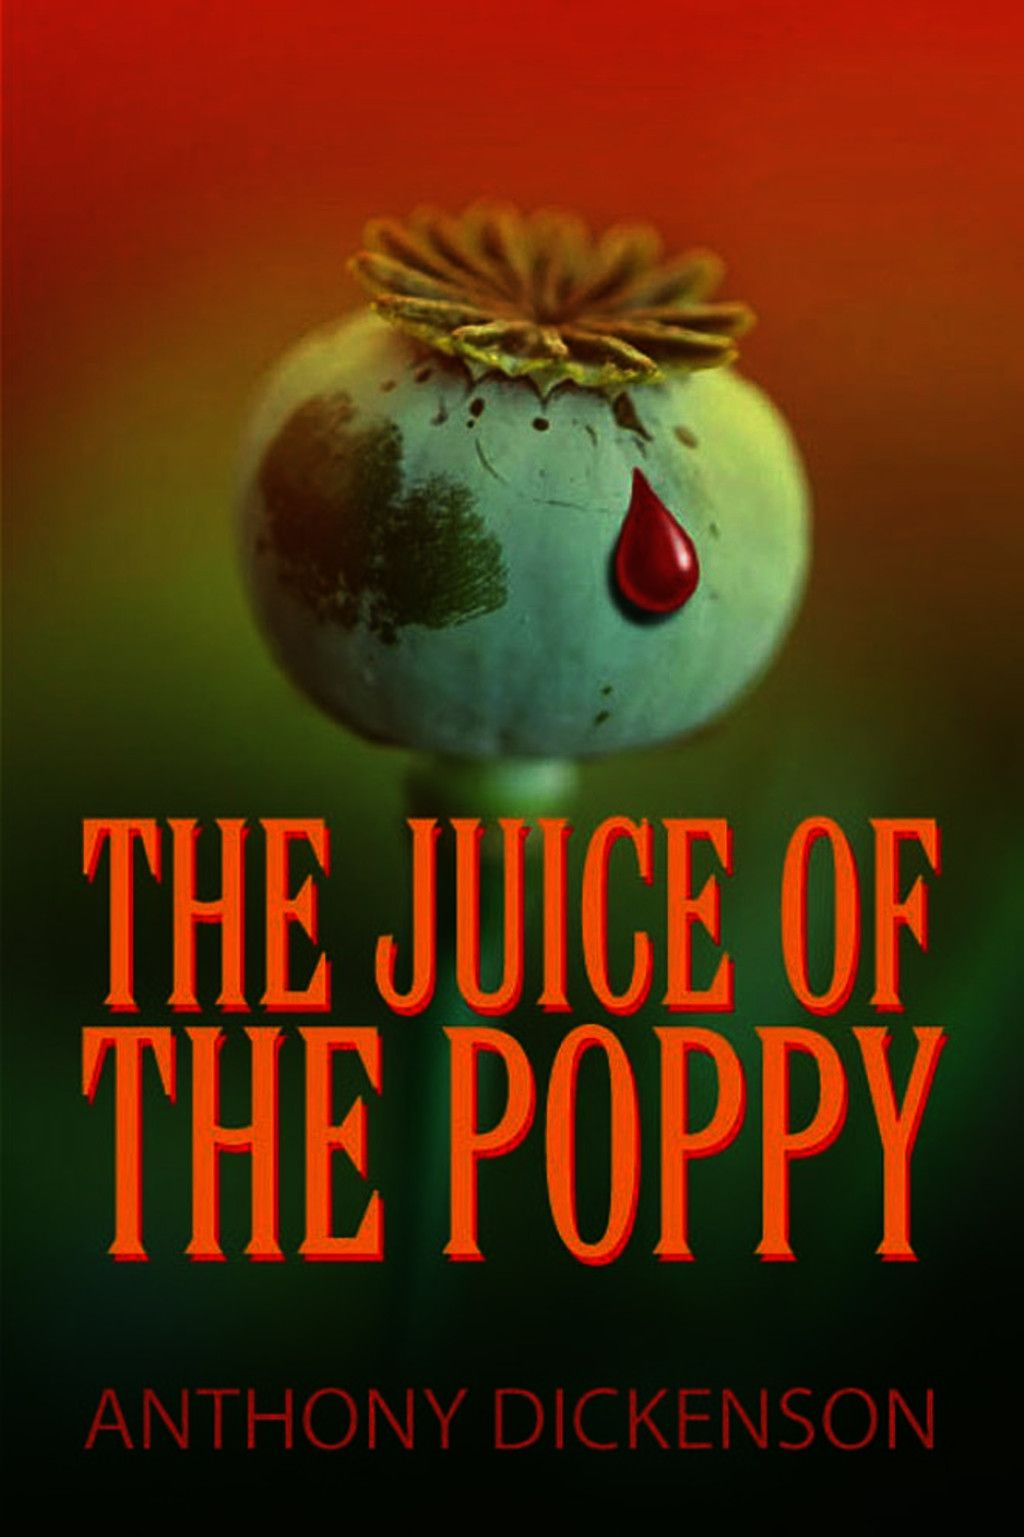 The Juice Of The Poppy